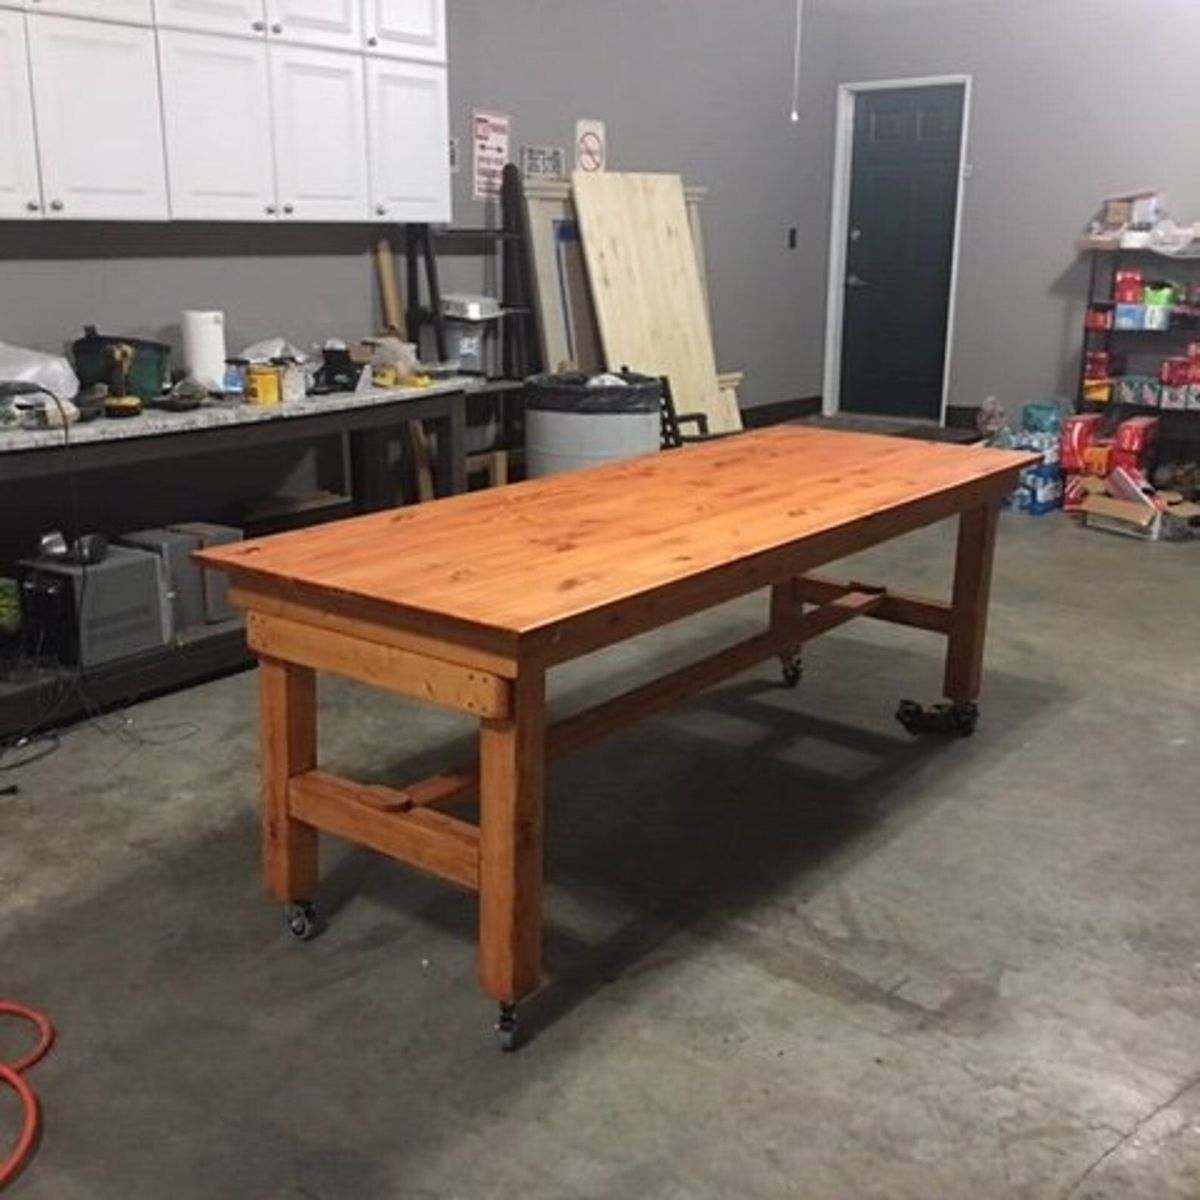 Folding Work Bench Plans In 2020 With Images Bench Plans